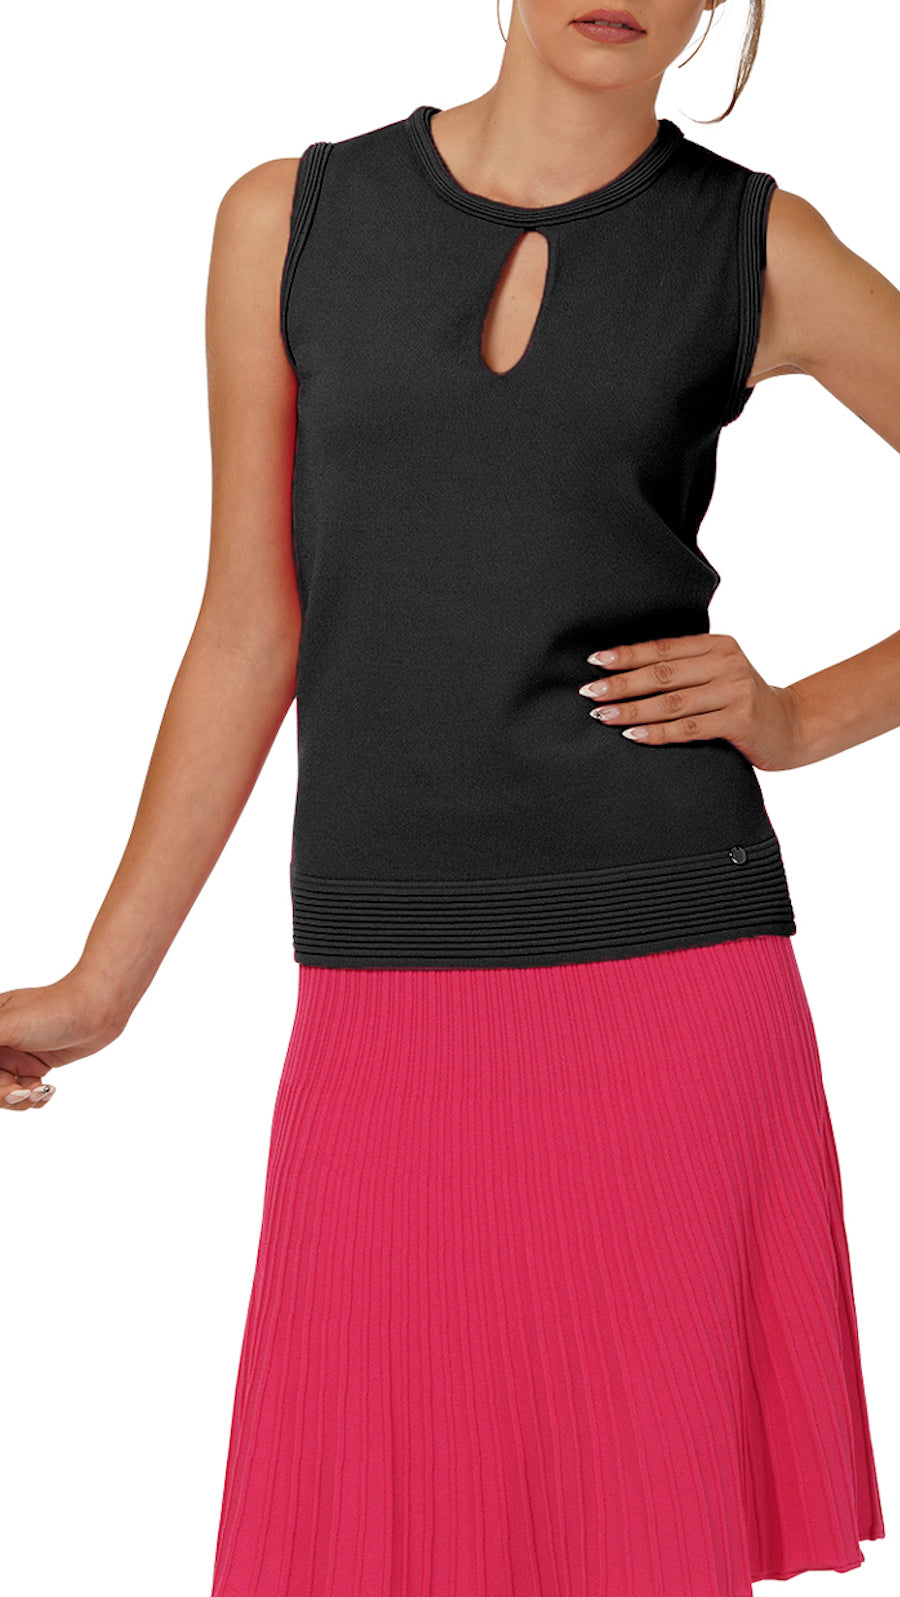 Stella Sleeveless Knitted Top, Black